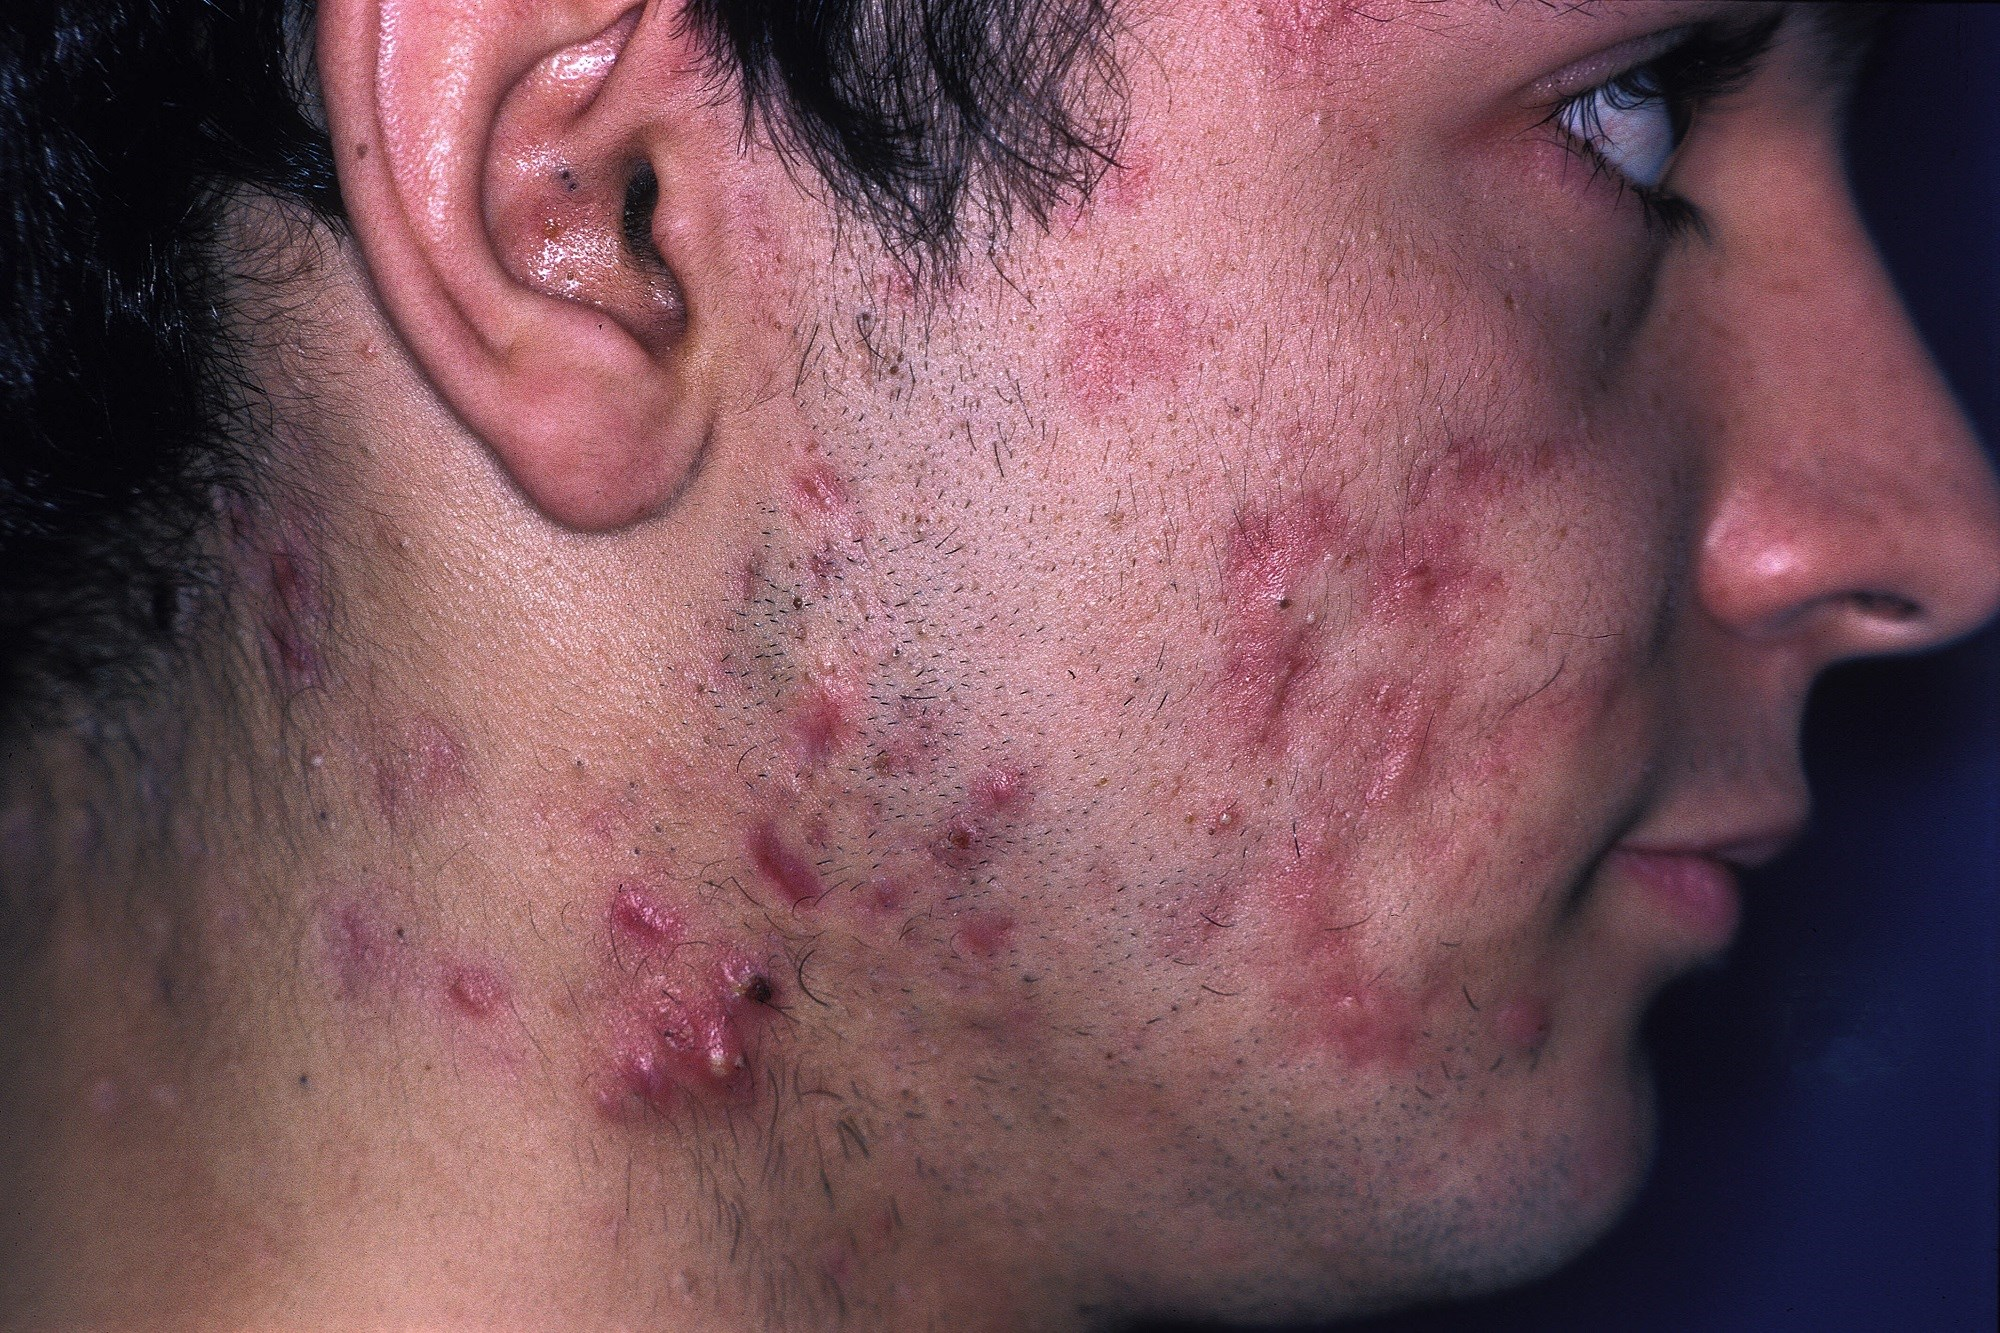 Amoxicillin Therapy Effective for Treating Inflammatory Acne